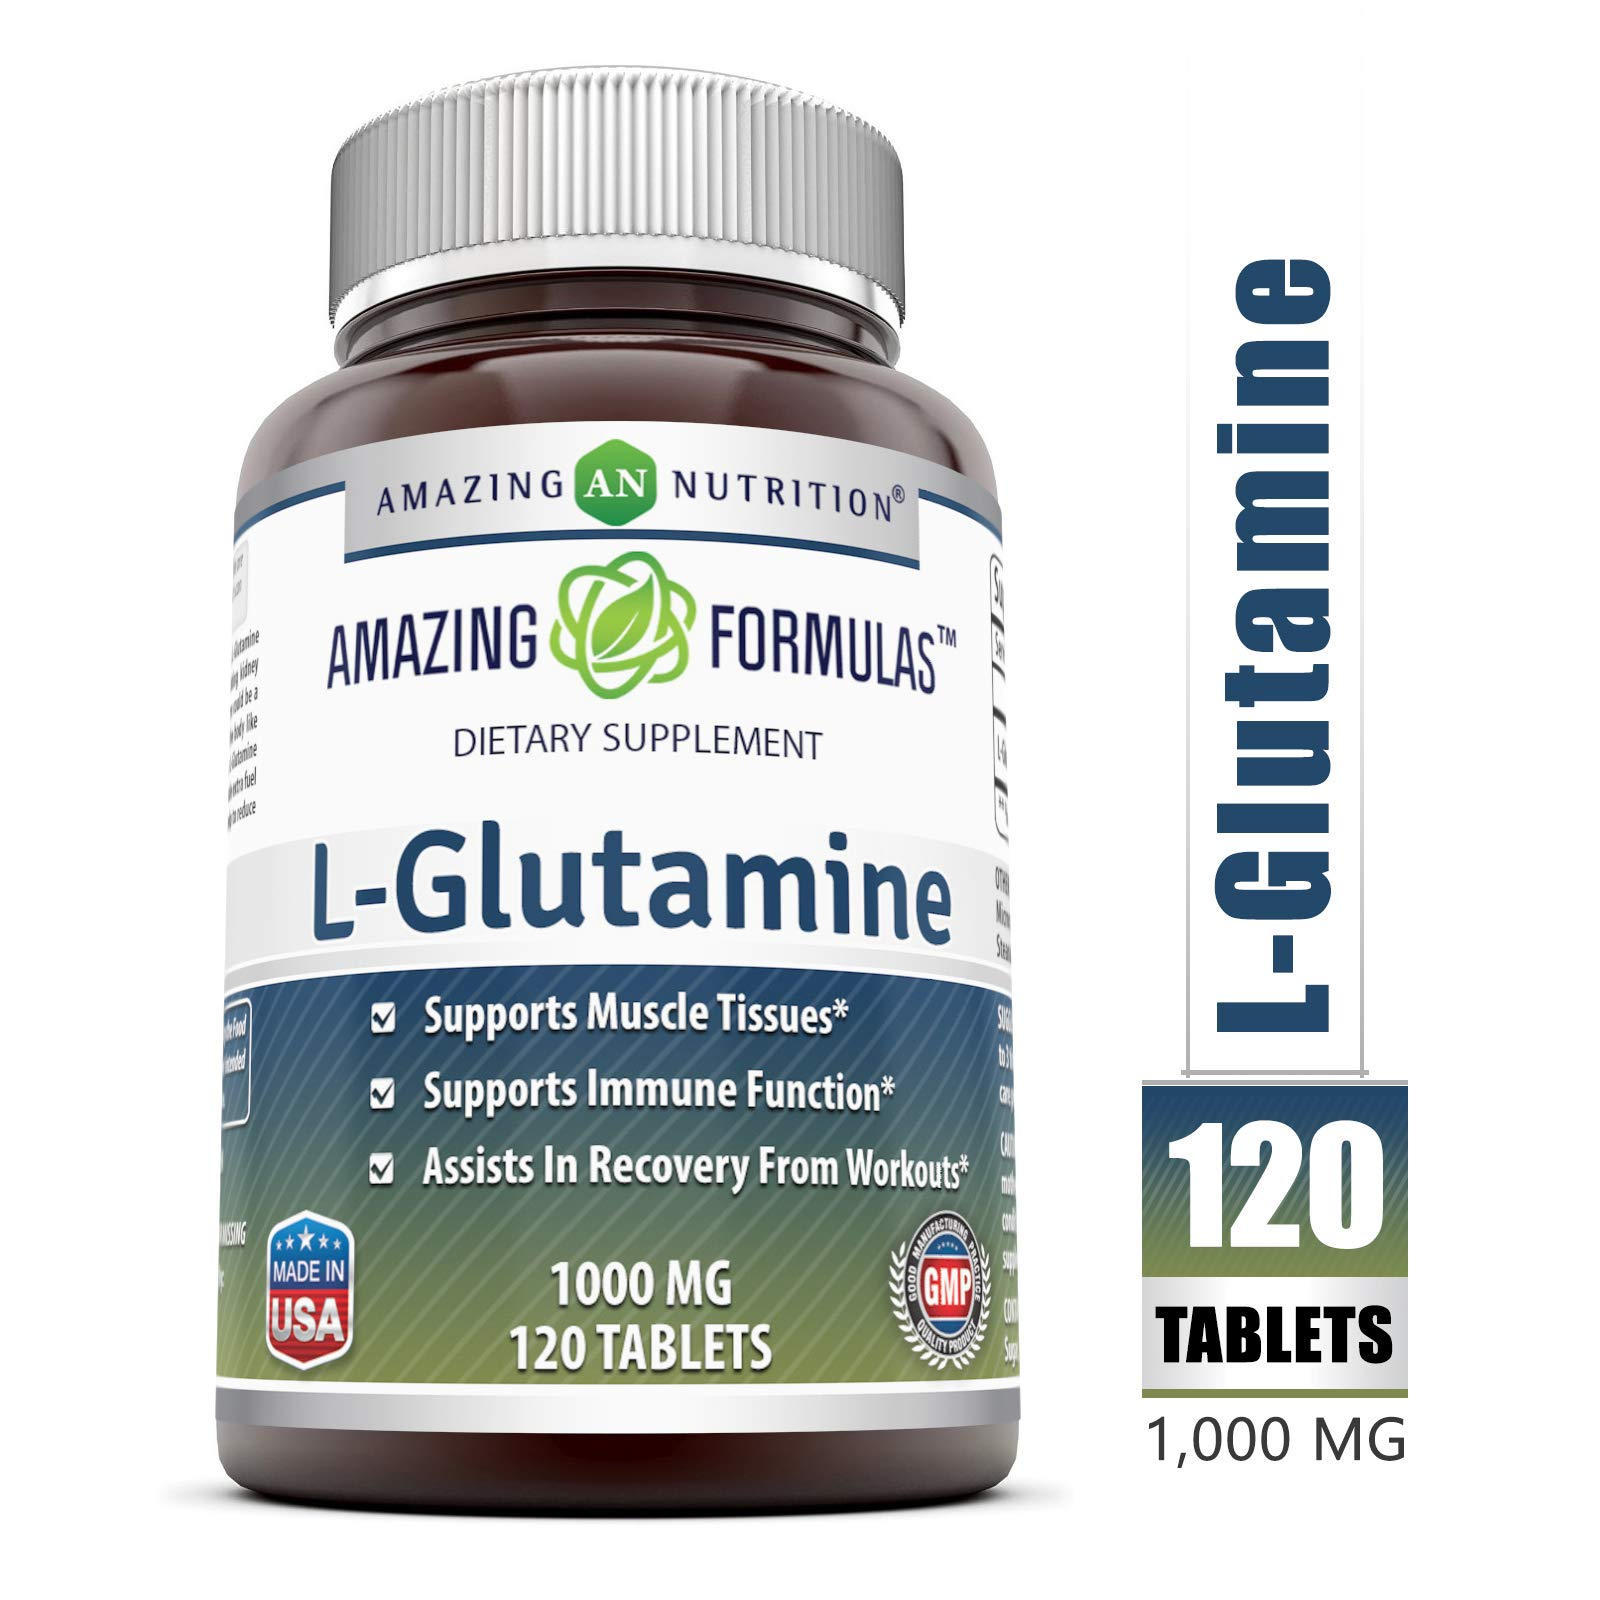 Amazing Formulas L Glutamine Tablets Supplement - 1000mg 120 Tablets Per Bottle - Promotes Workout Recovery, Supports The Immune System & Muscle Maintenance by Amazing Nutrition